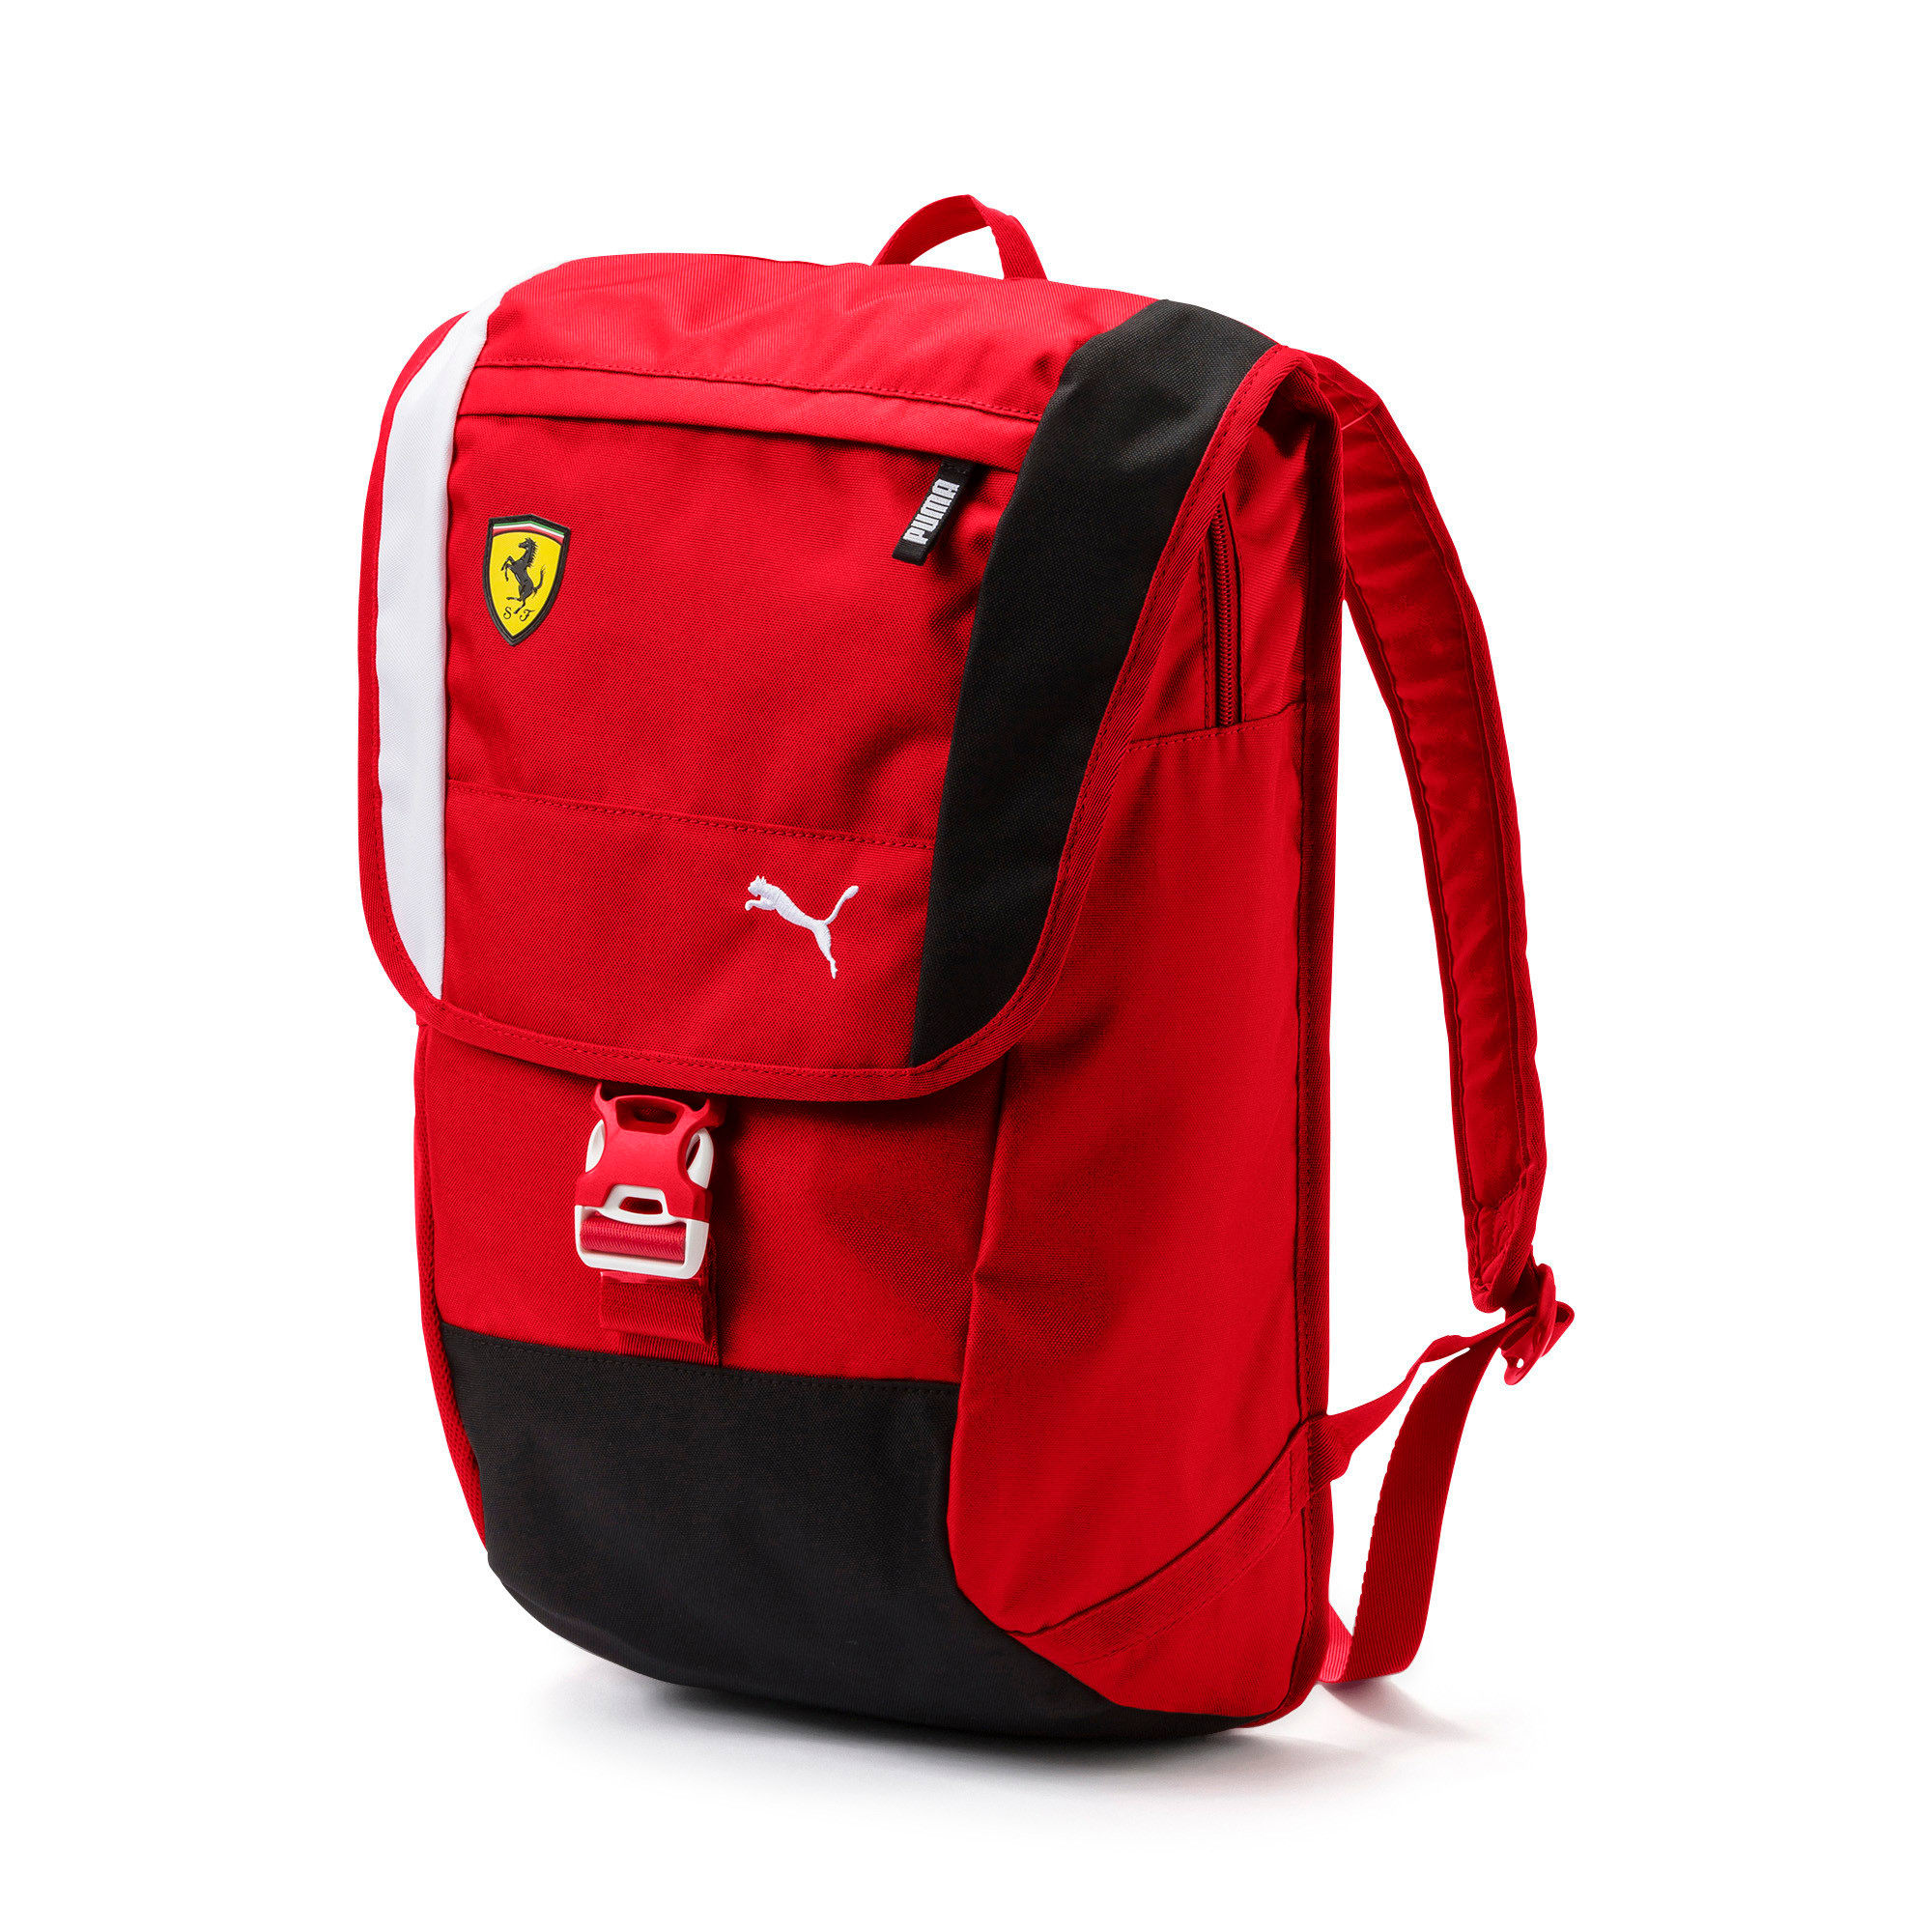 Thumbnail 1 of Ferrari Fanwear Backpack, Rosso Corsa, medium